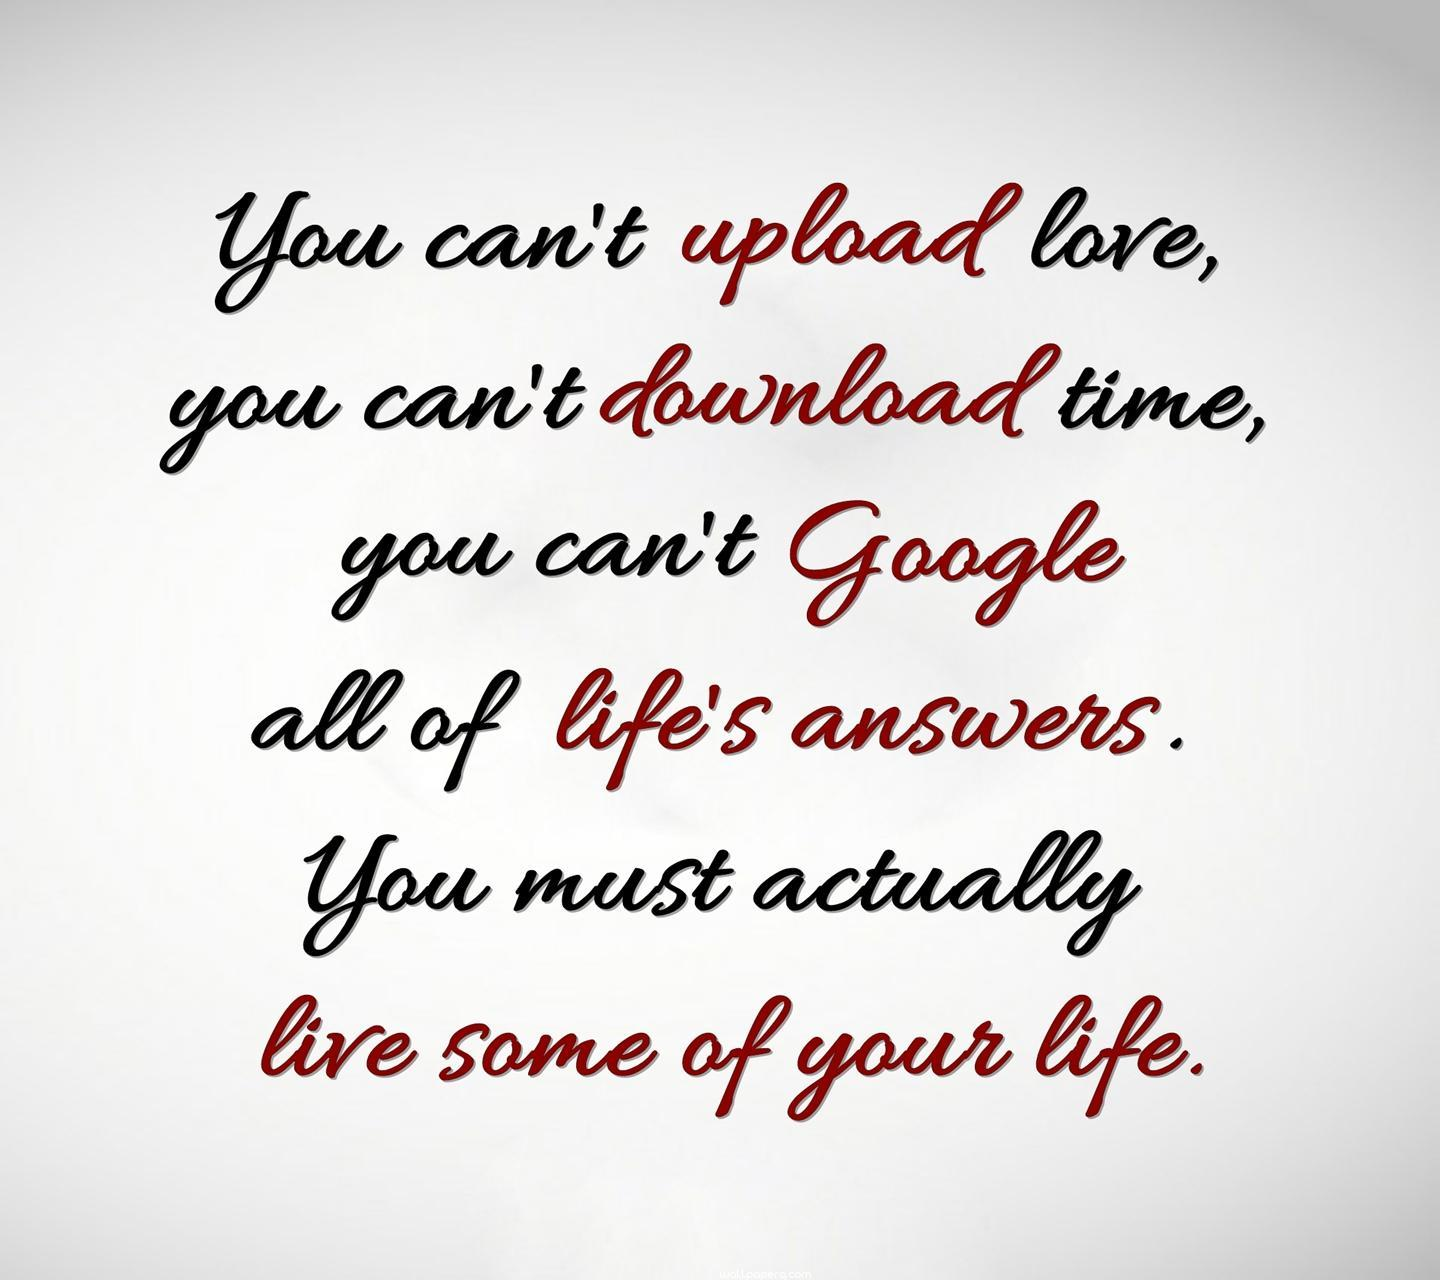 Wallpaper With Quotes On Life For Mobile: Download Live Your Life Hd Wallpaper For Mobile & Laptops